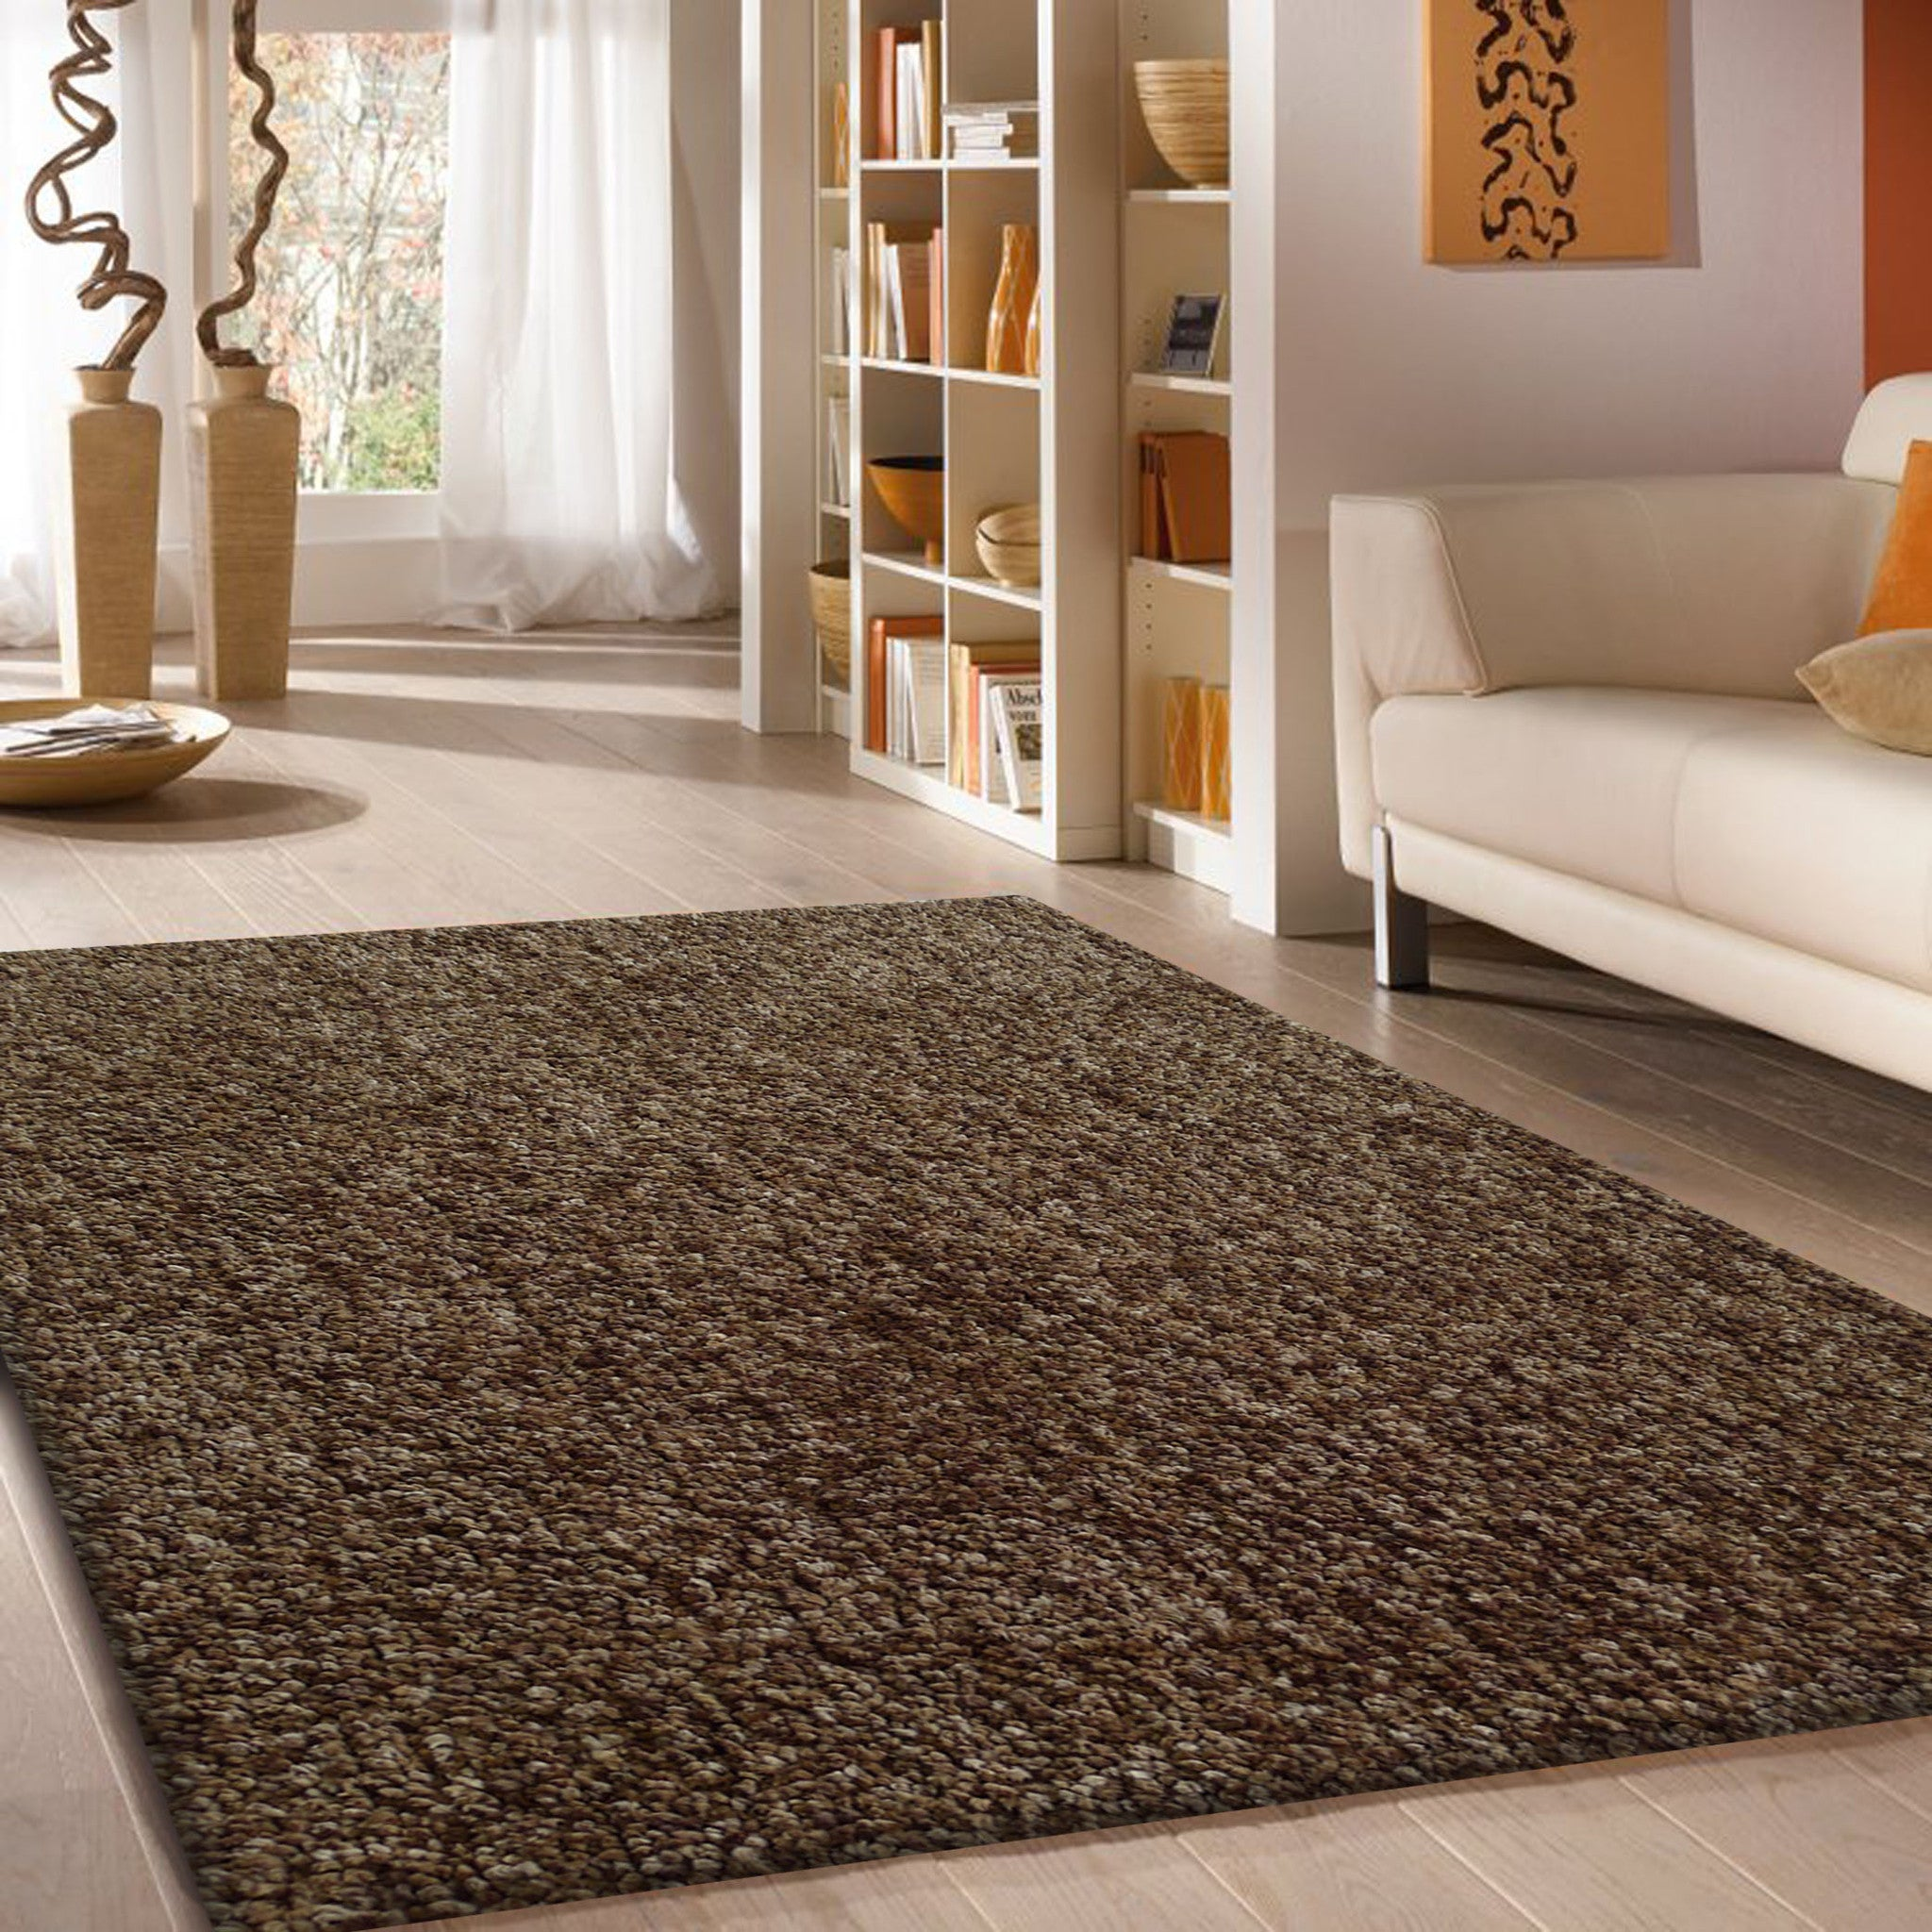 Hand-tufted Winter Grey Thick Plush Shag Area Rug